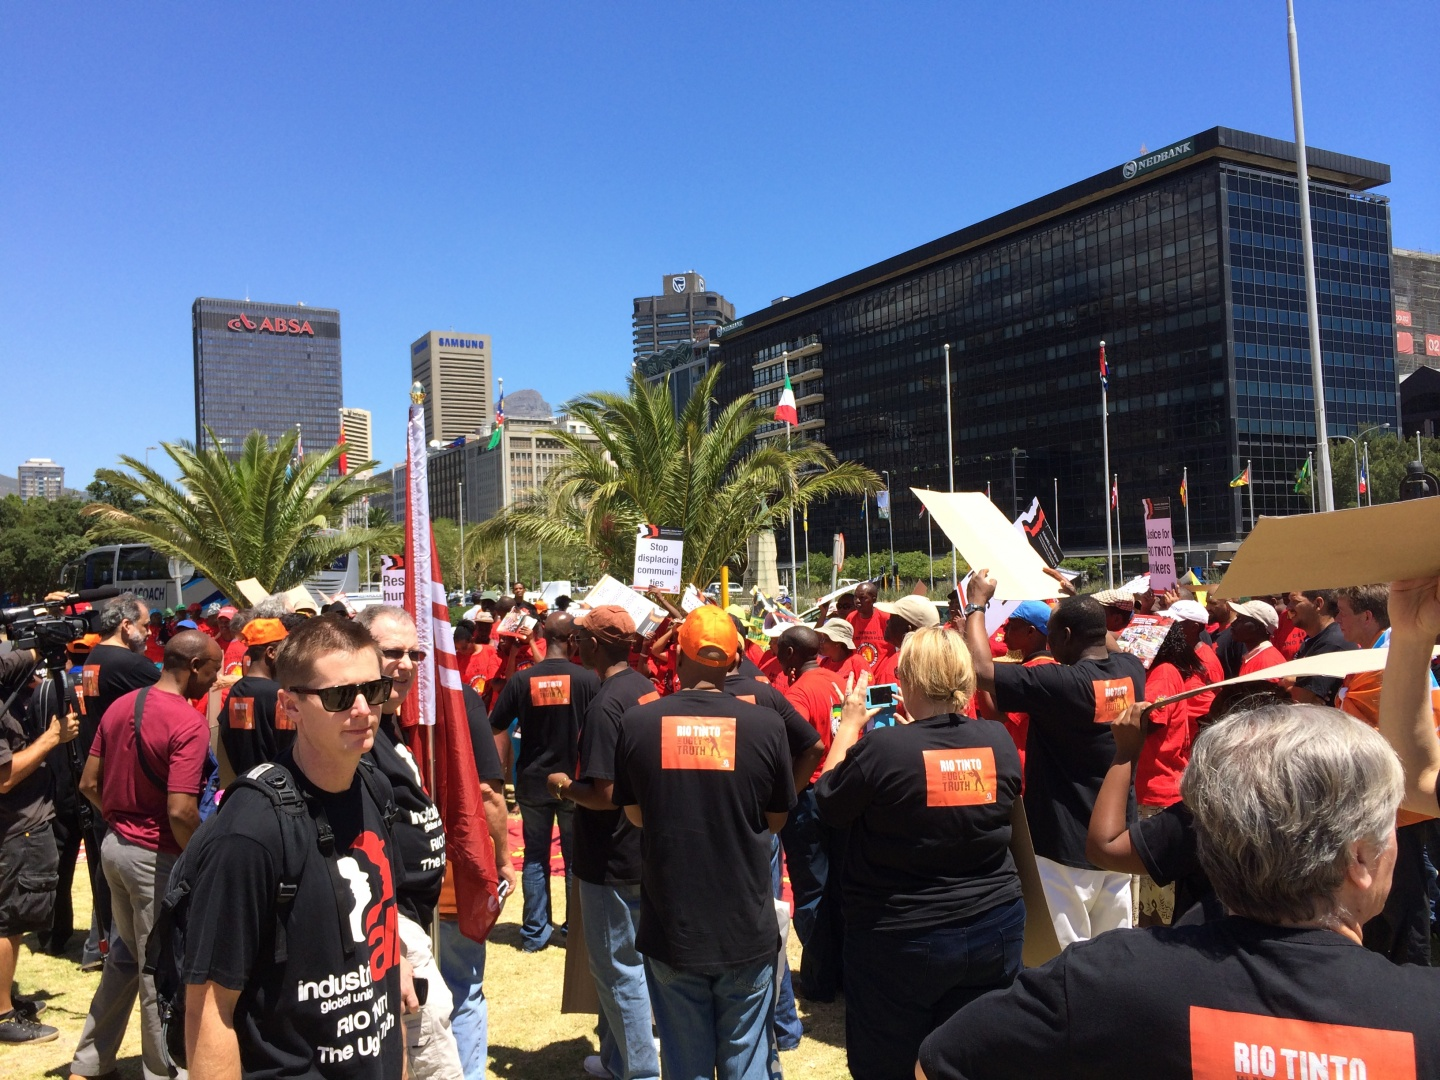 Launch of global campaign against Rio Tinto in Cape Town | IndustriALL